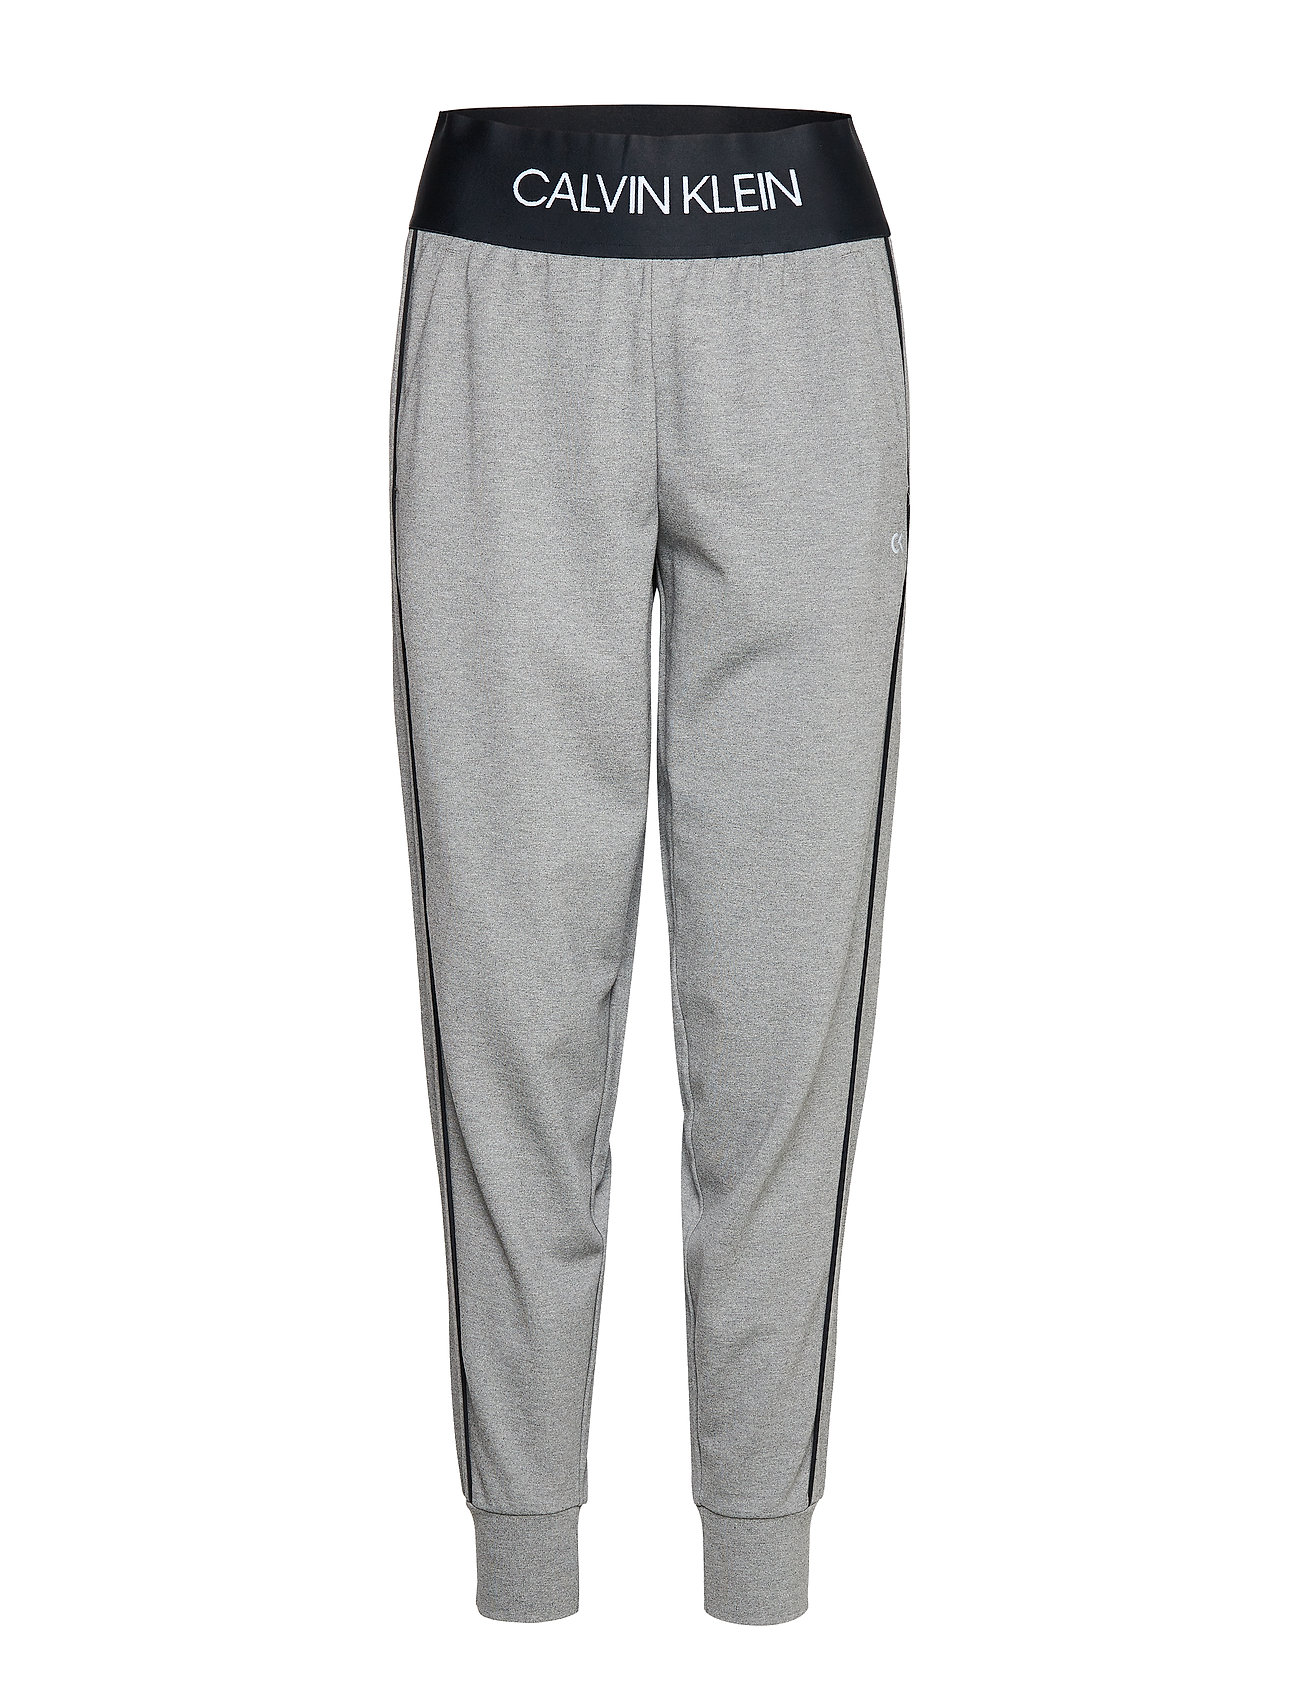 Calvin Klein Performance KNIT PANTS - MEDIUM GREY HEATHER